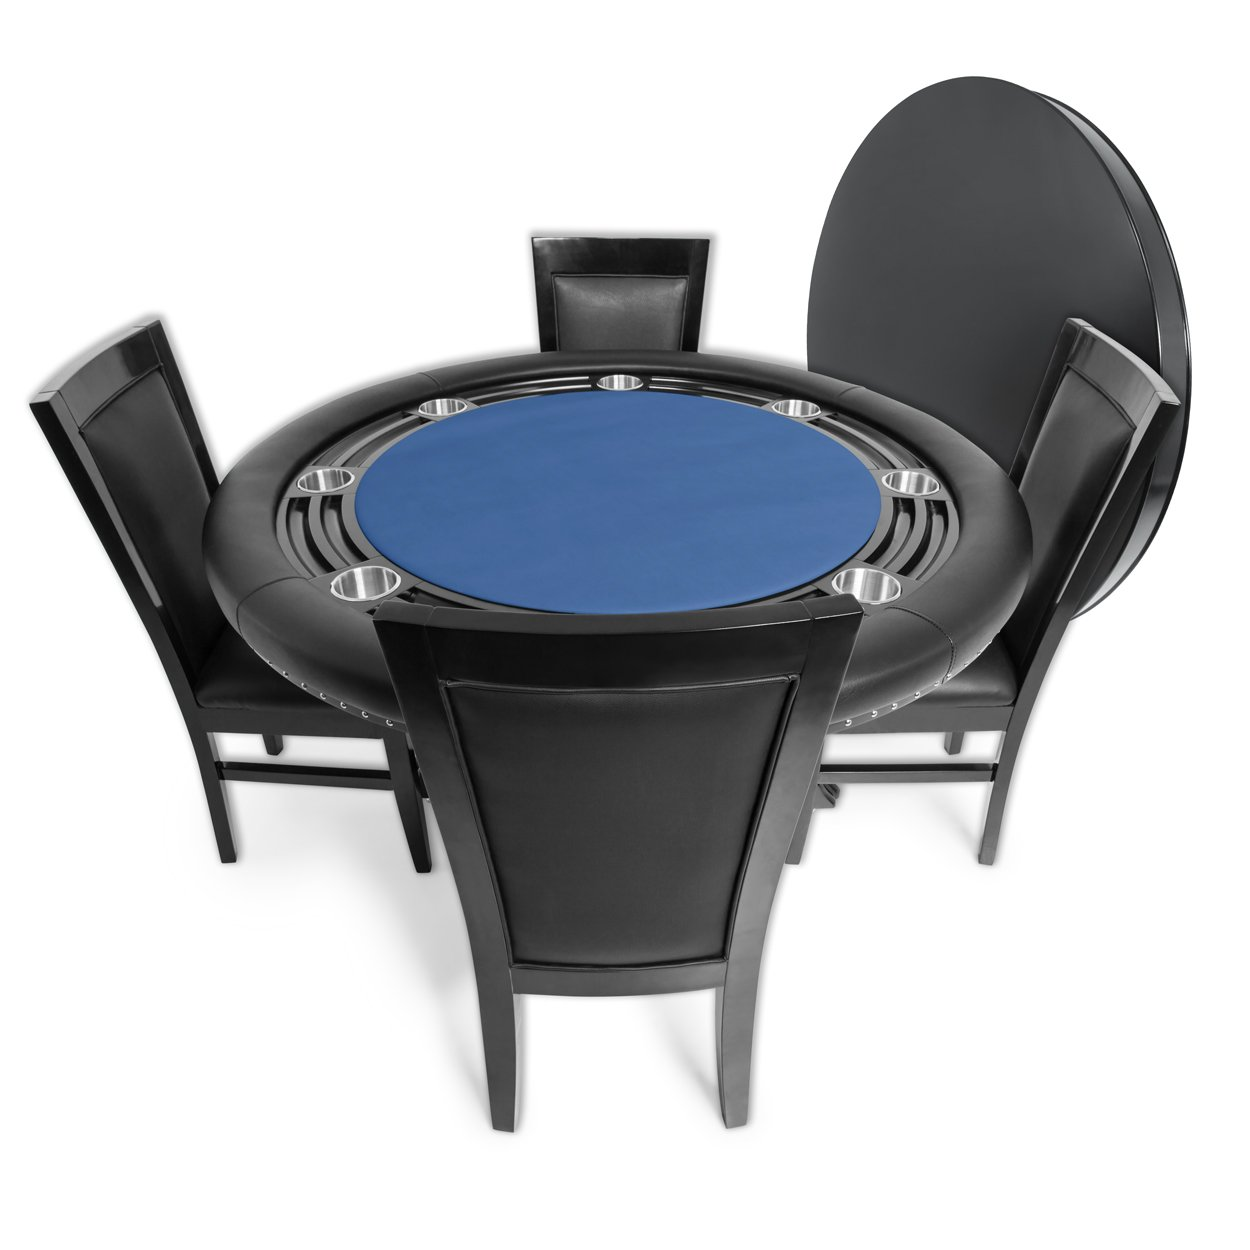 BBO Poker Nighthawk Poker Table for 8 Players with Blue Felt Playing Surface, 55-Inch Round, Includes Matching Dining Top with 4 Dining Chairs by BBO Poker